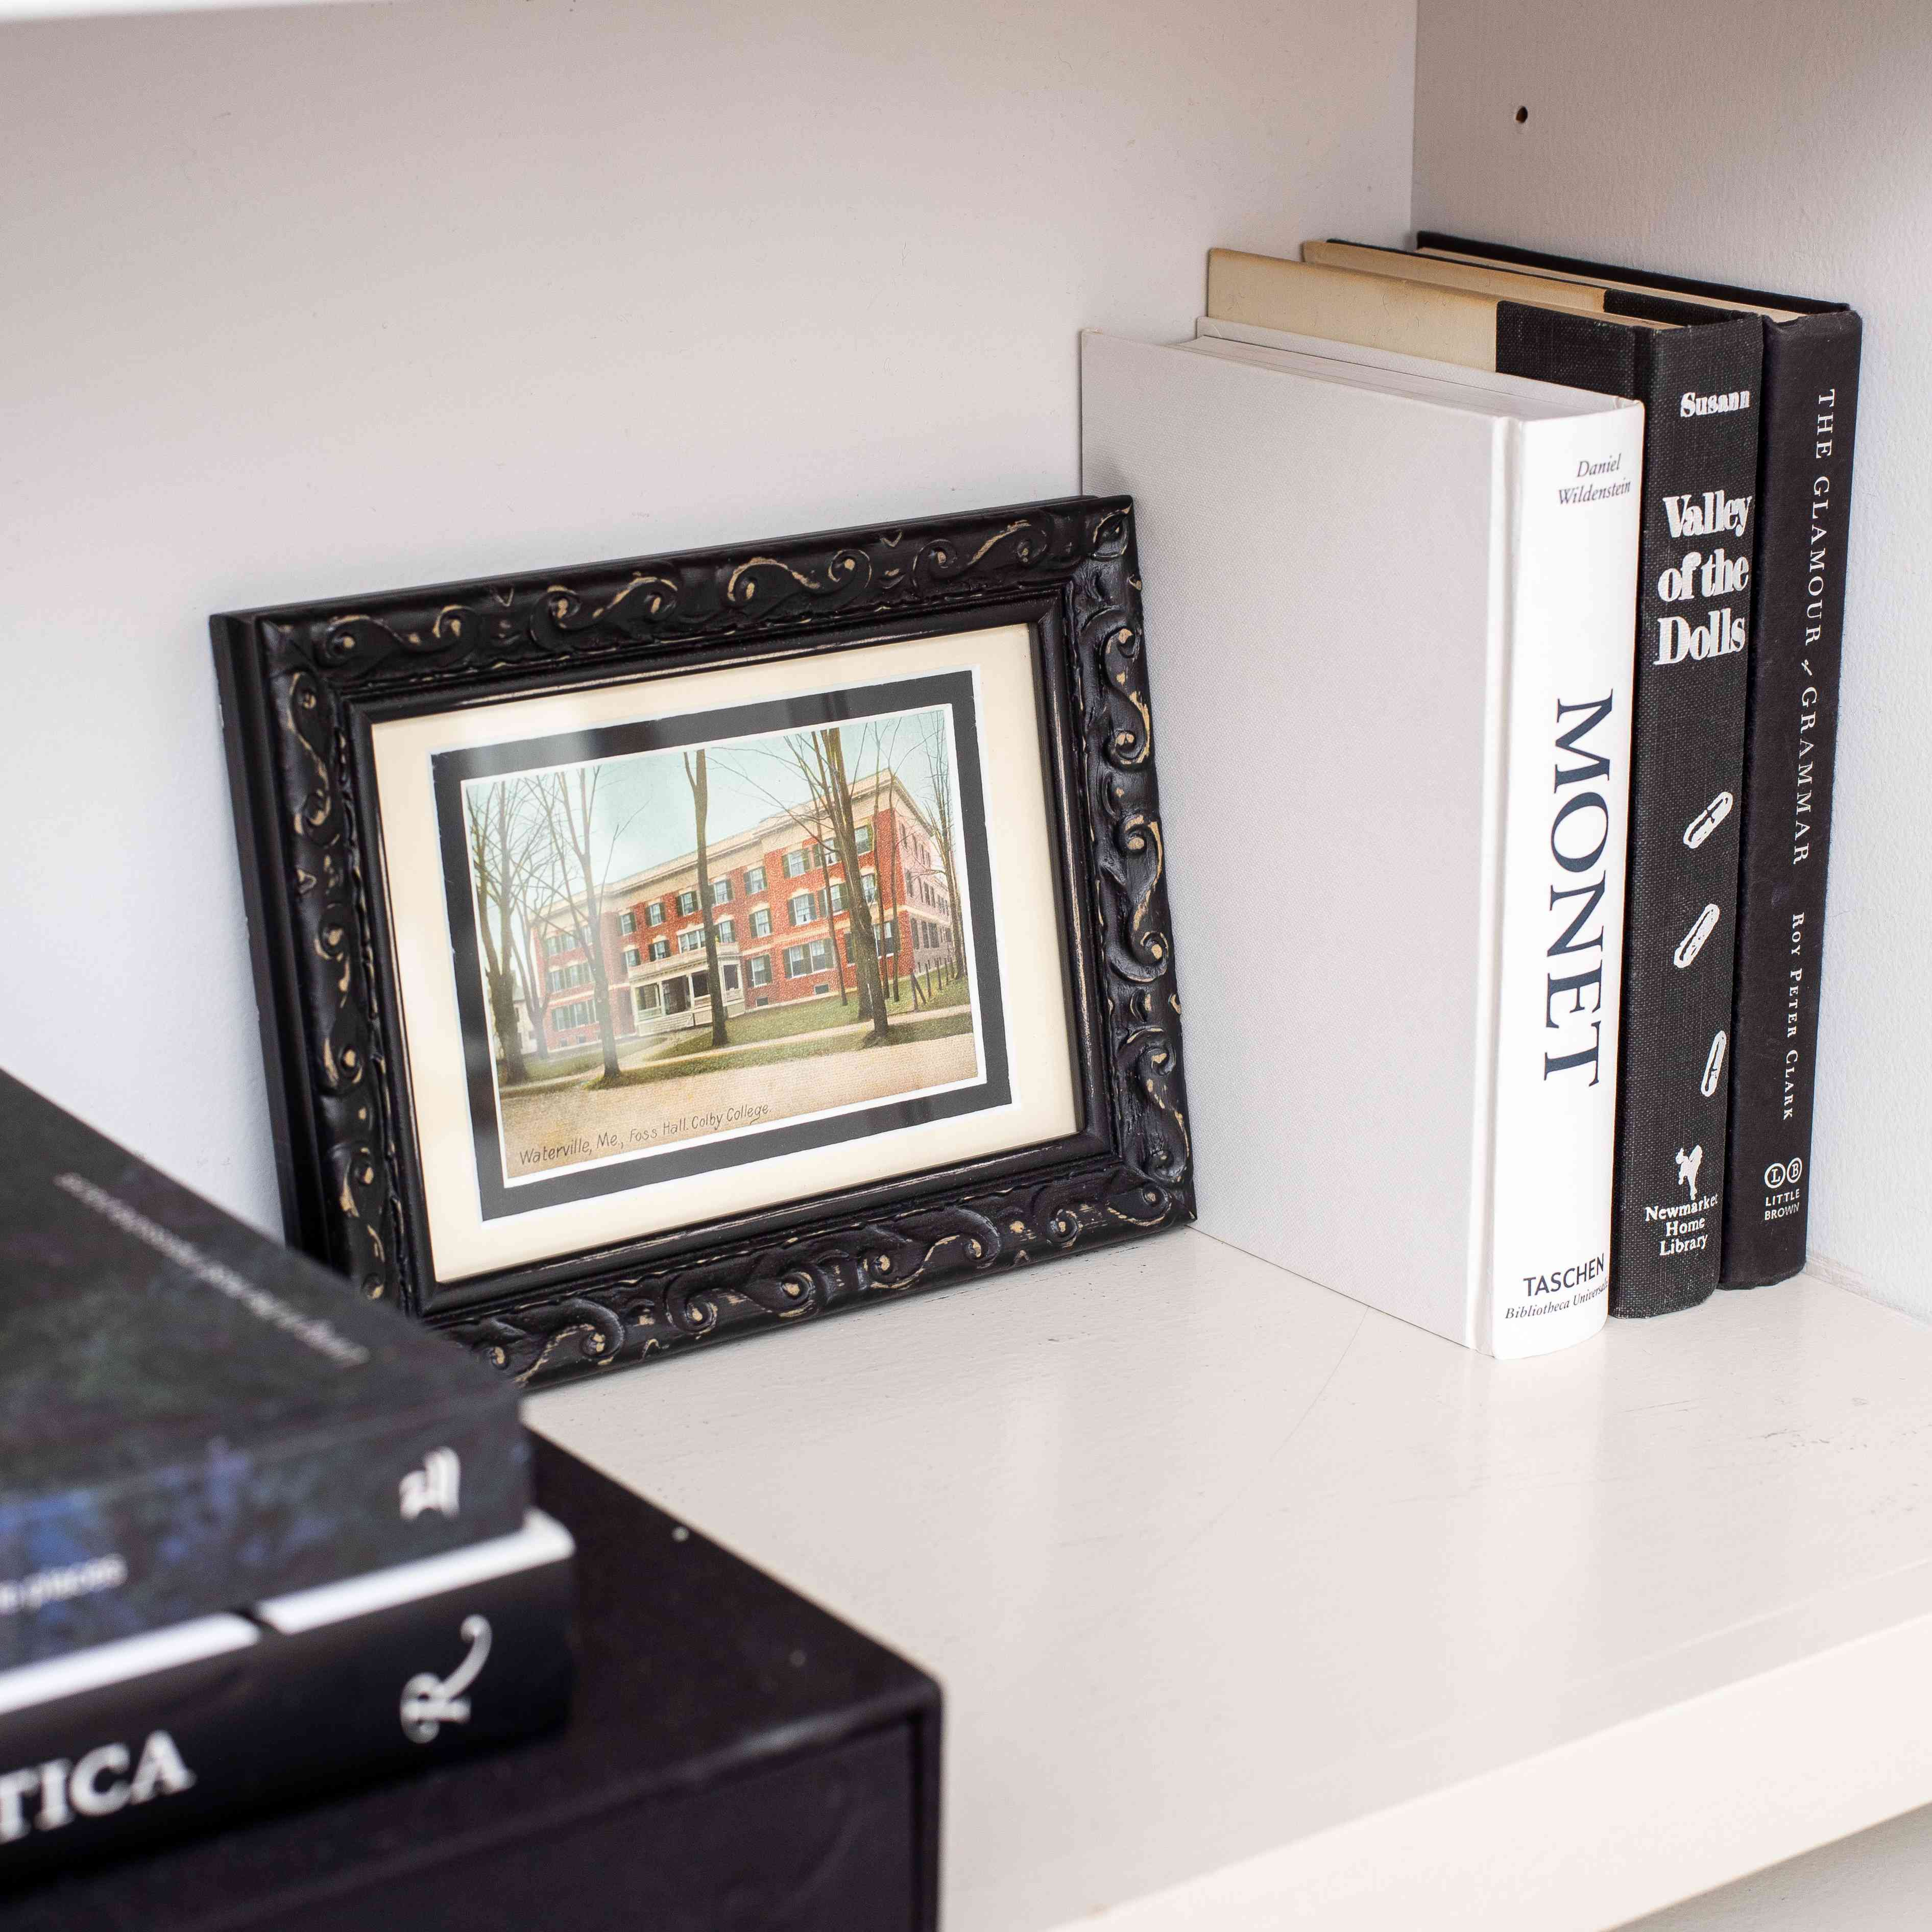 Small frame next to hardcover books.